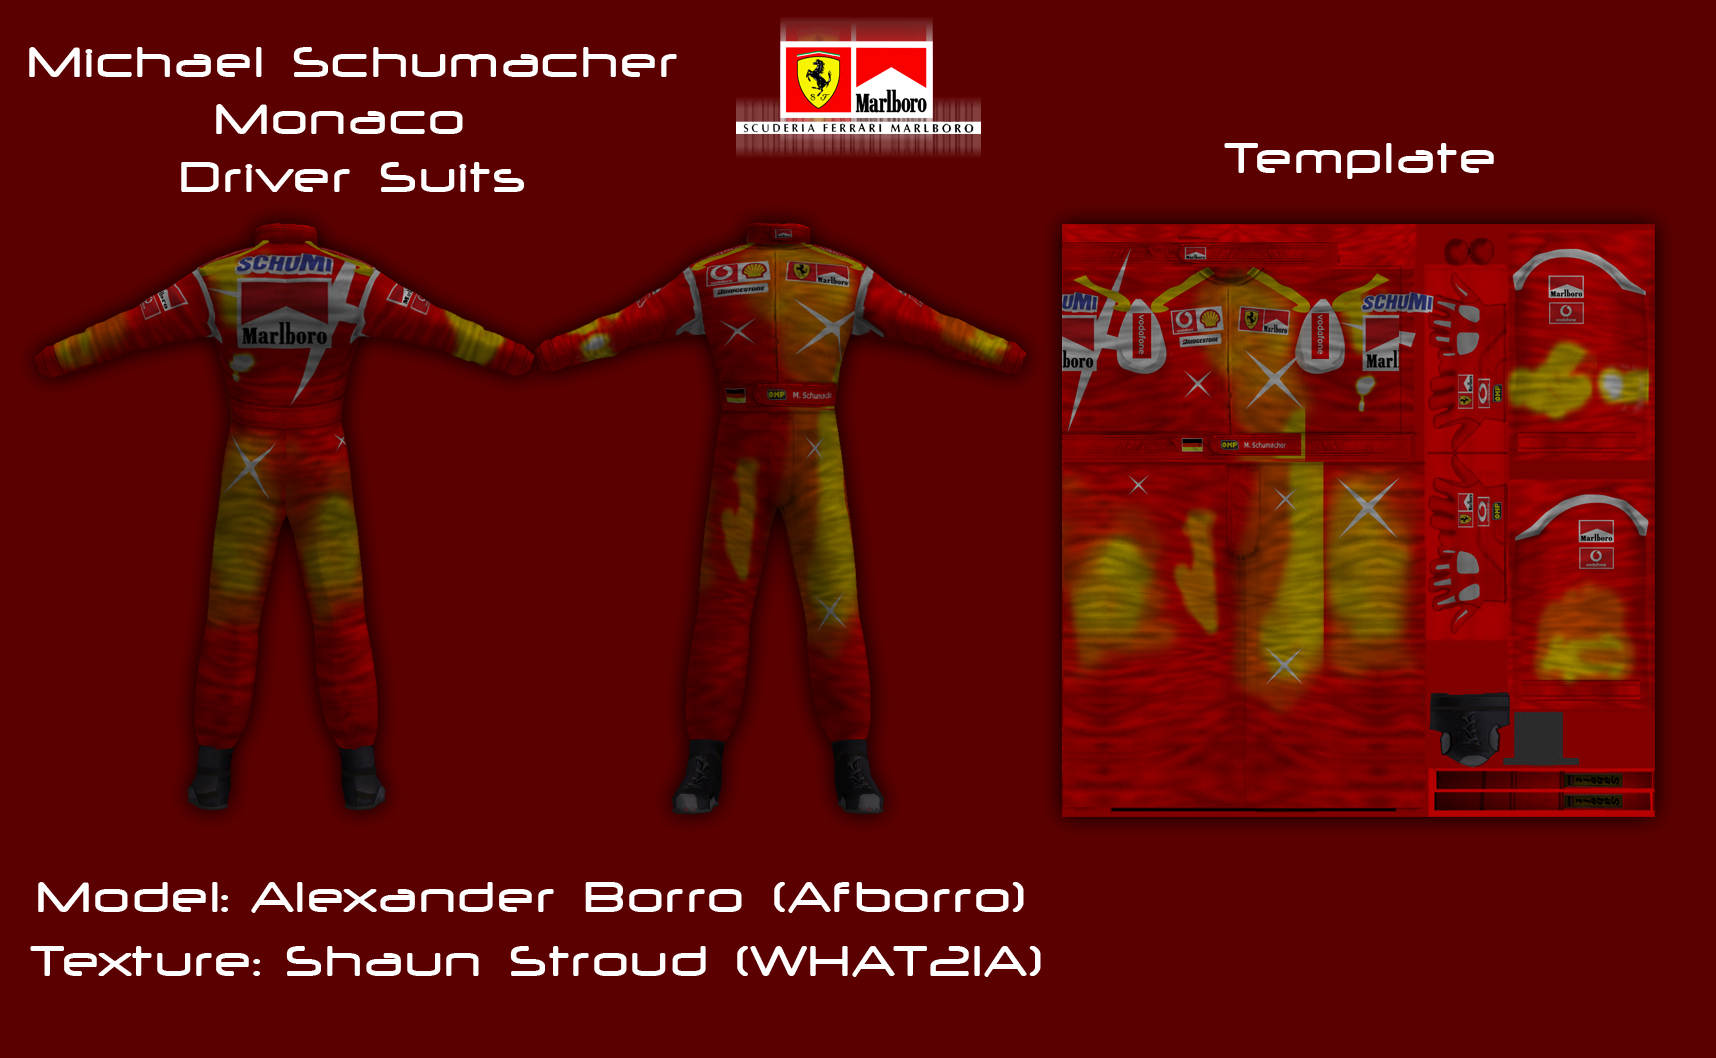 Schumacher Ferrari Monaco Driver Suit Ctdp Development Blog